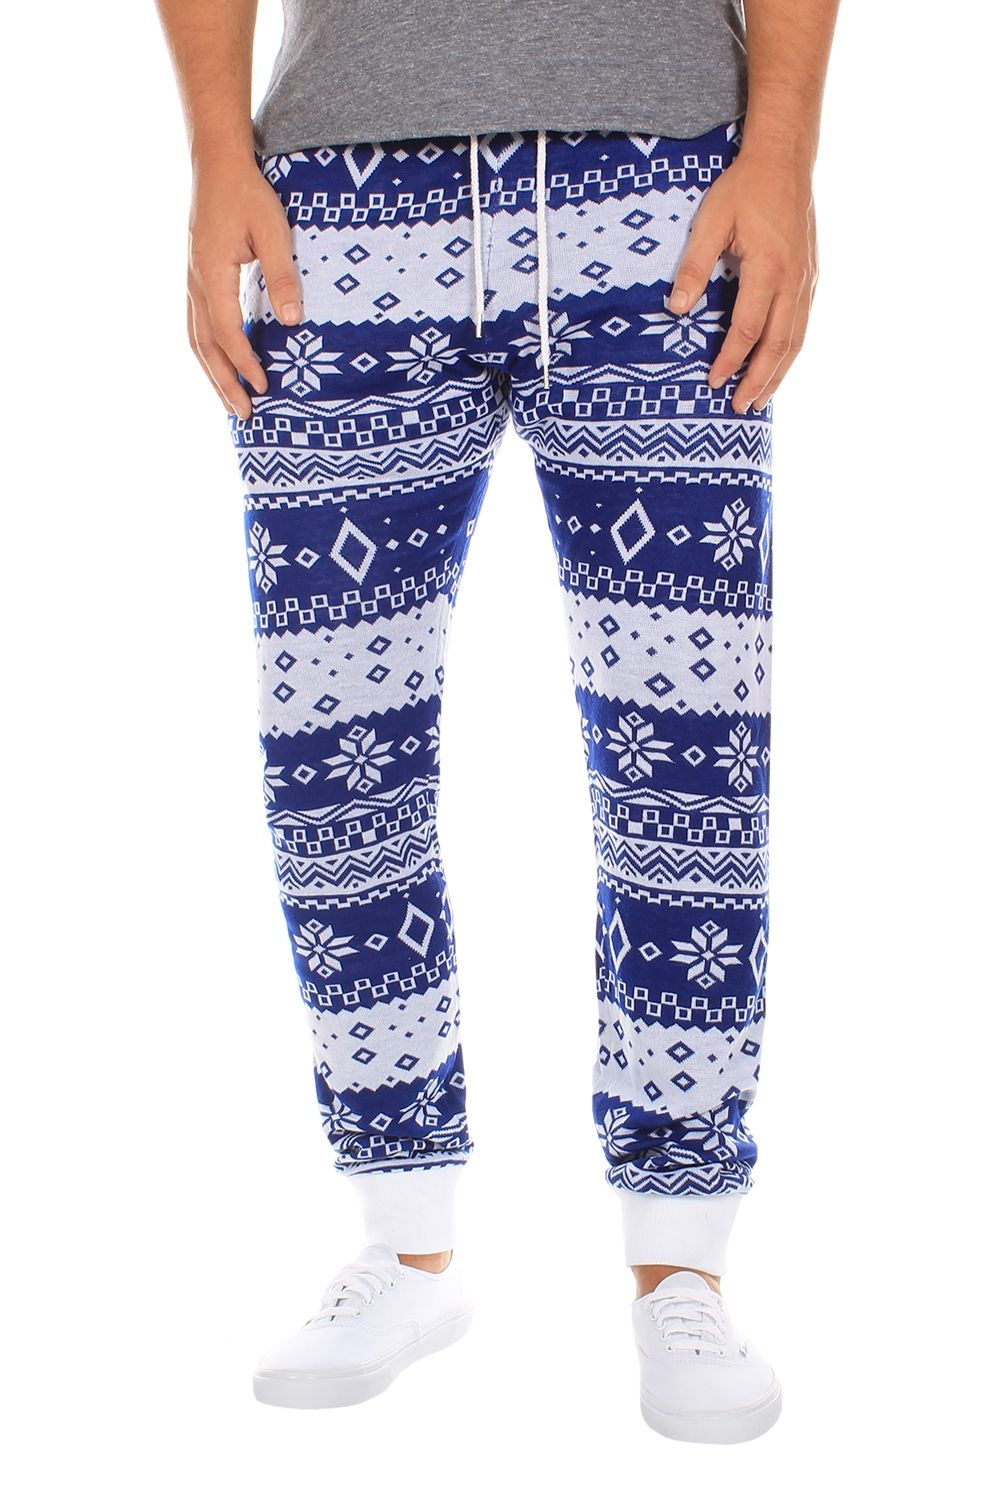 243b36a51 Women's Gray and Red Reindeer Joggers | Clothes | Pinterest | Blue ...